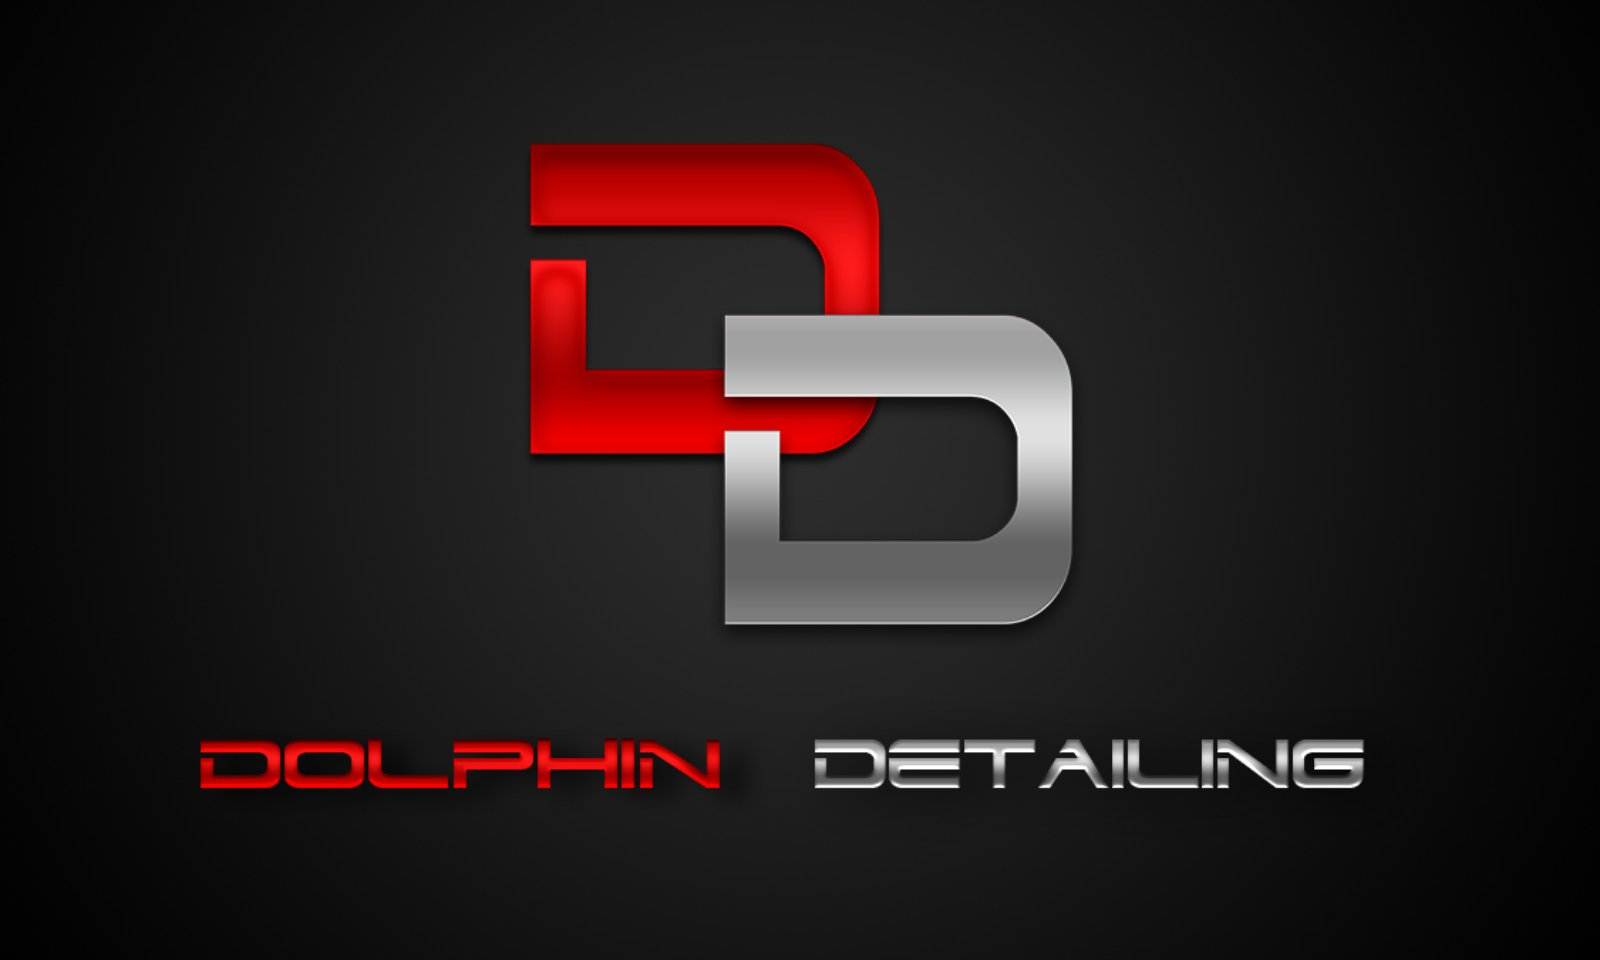 DOLPHIN DETAILING